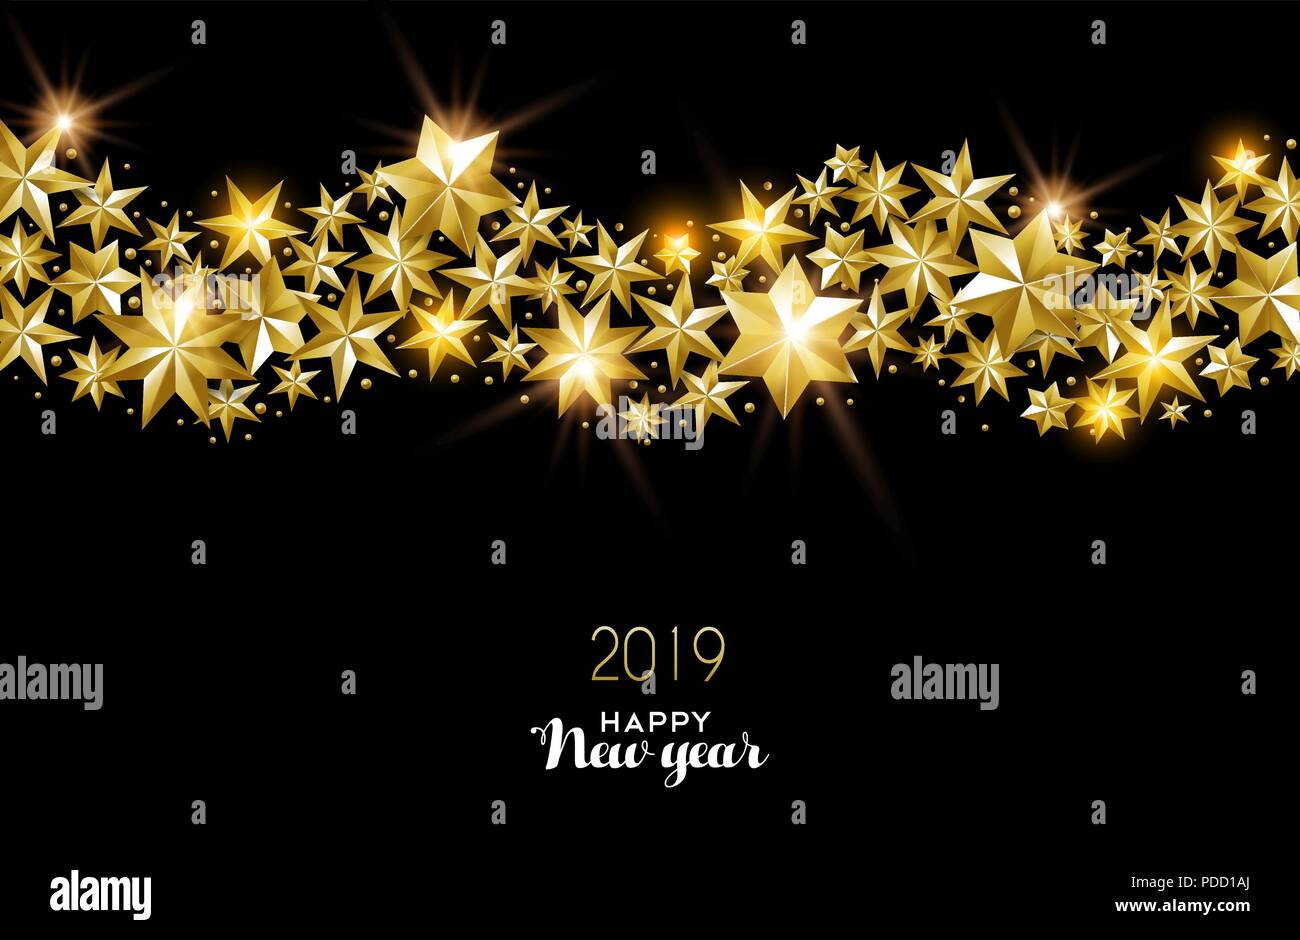 happy new year 2019 gold illustration made of realistic golden stars ideal for holiday card or elegant party invitation eps10 vector